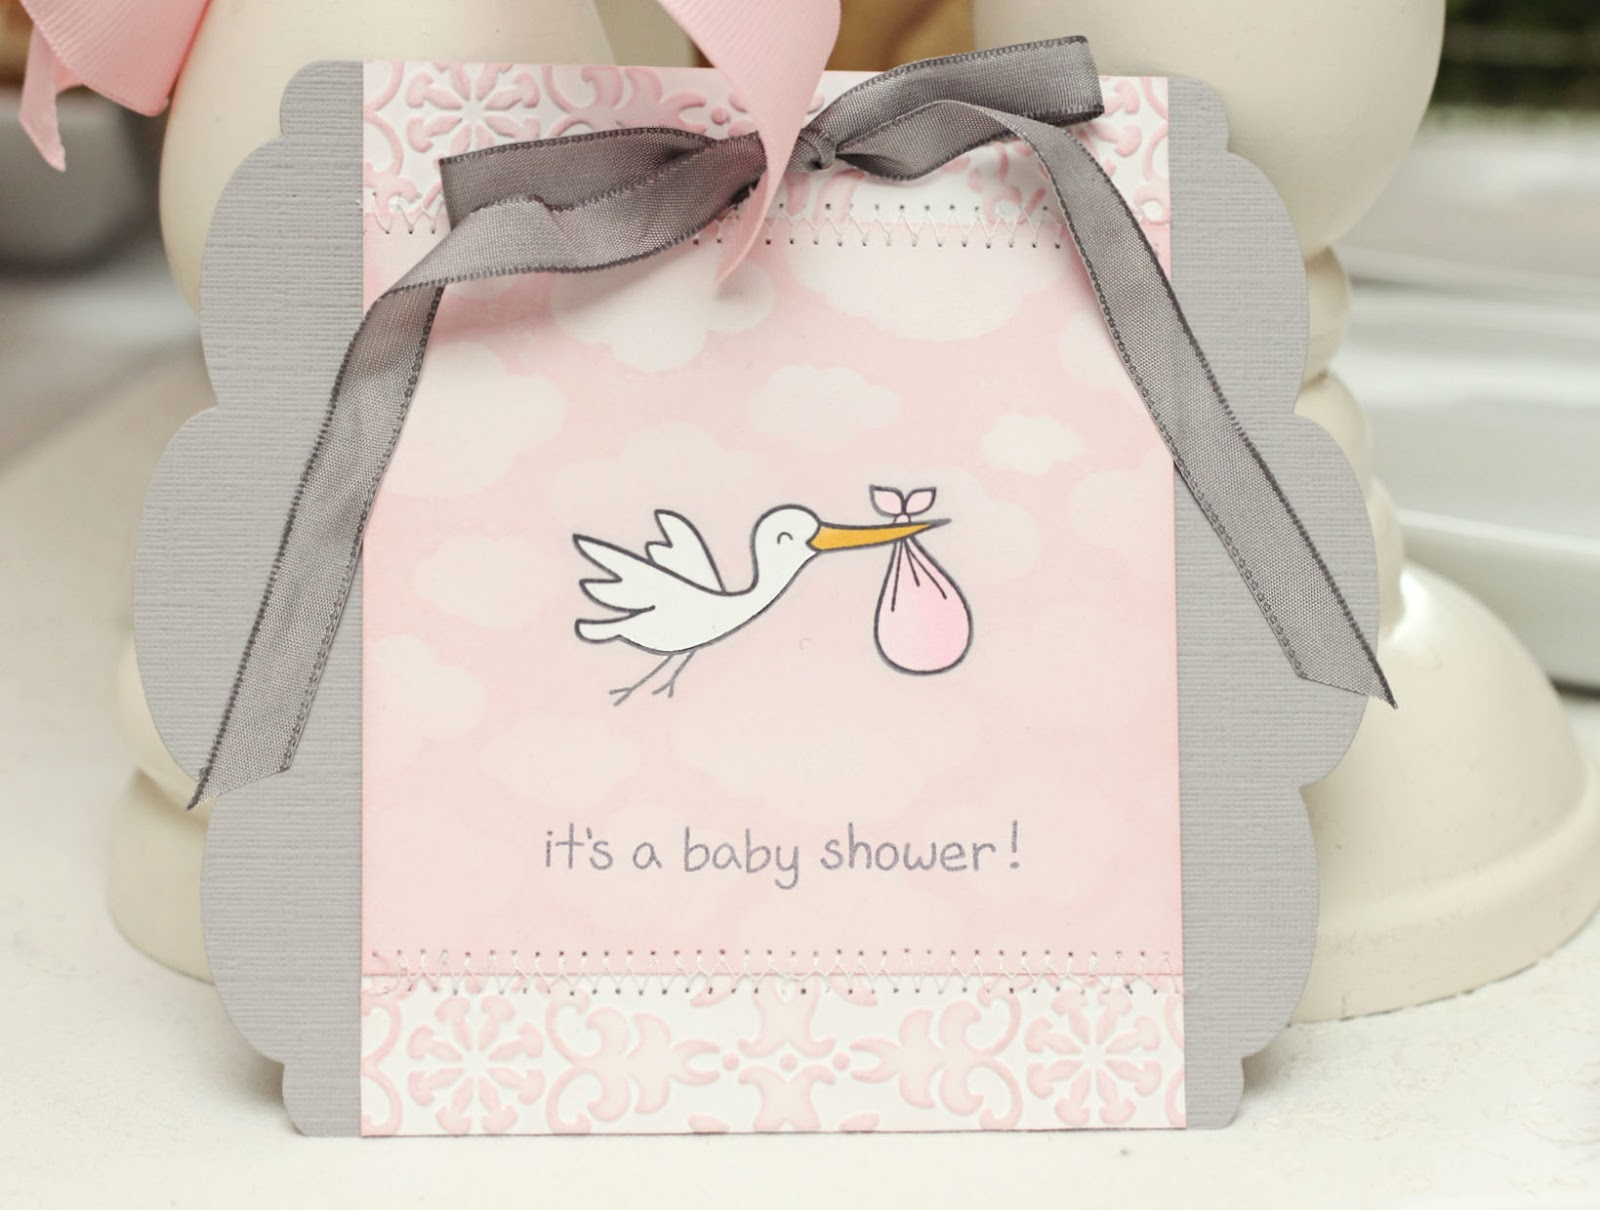 20120225 6 jpg just me pink grey baby shower pink grey baby shower salsuba image collections